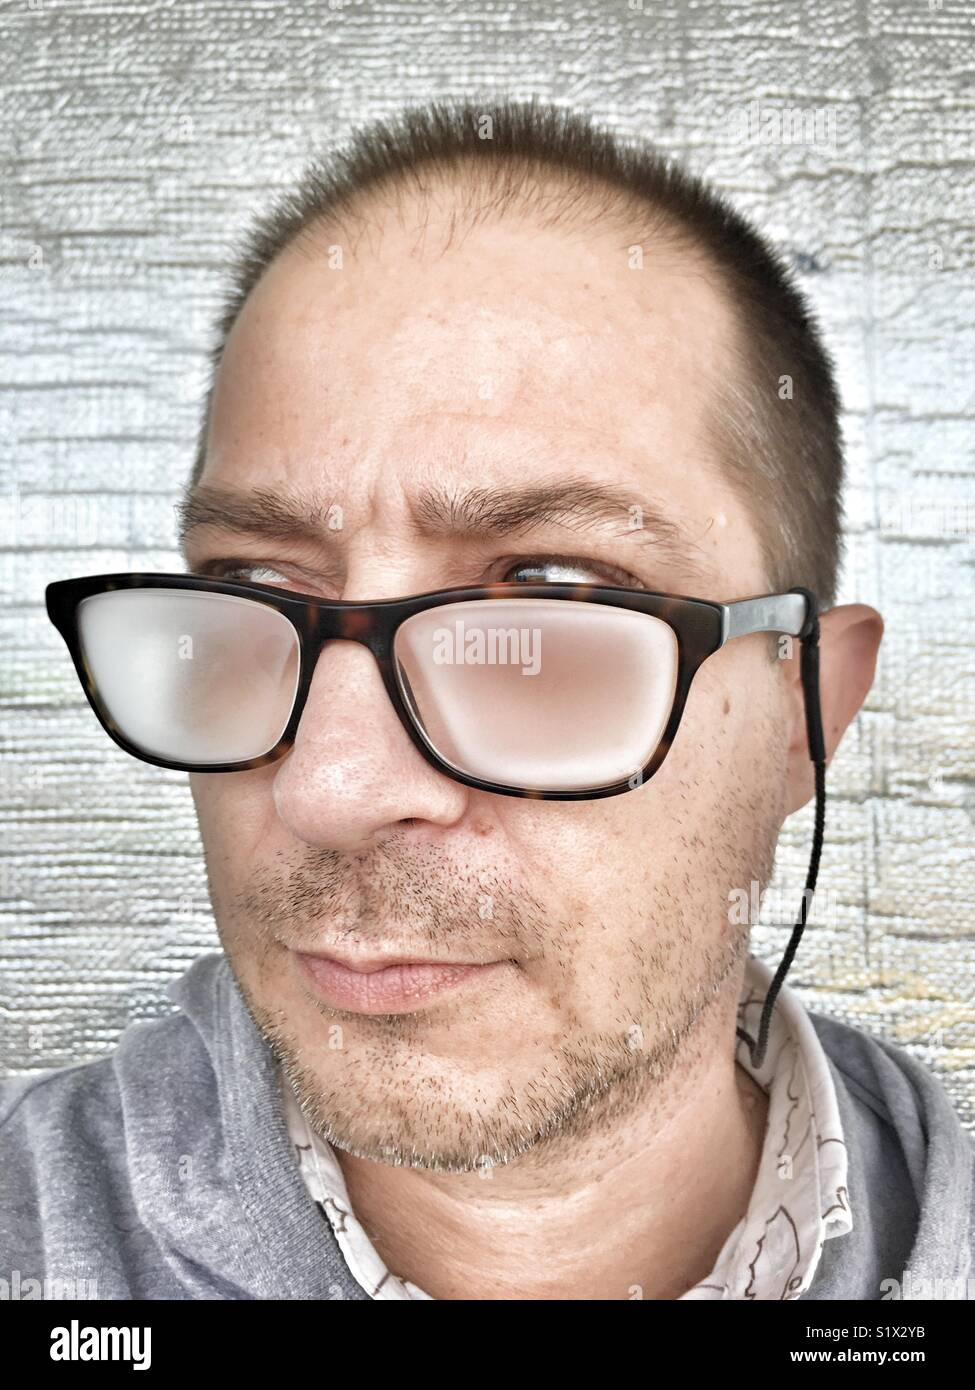 Portrait of a man, unshaven and wearing fogged up eyeglasses. - Stock Image